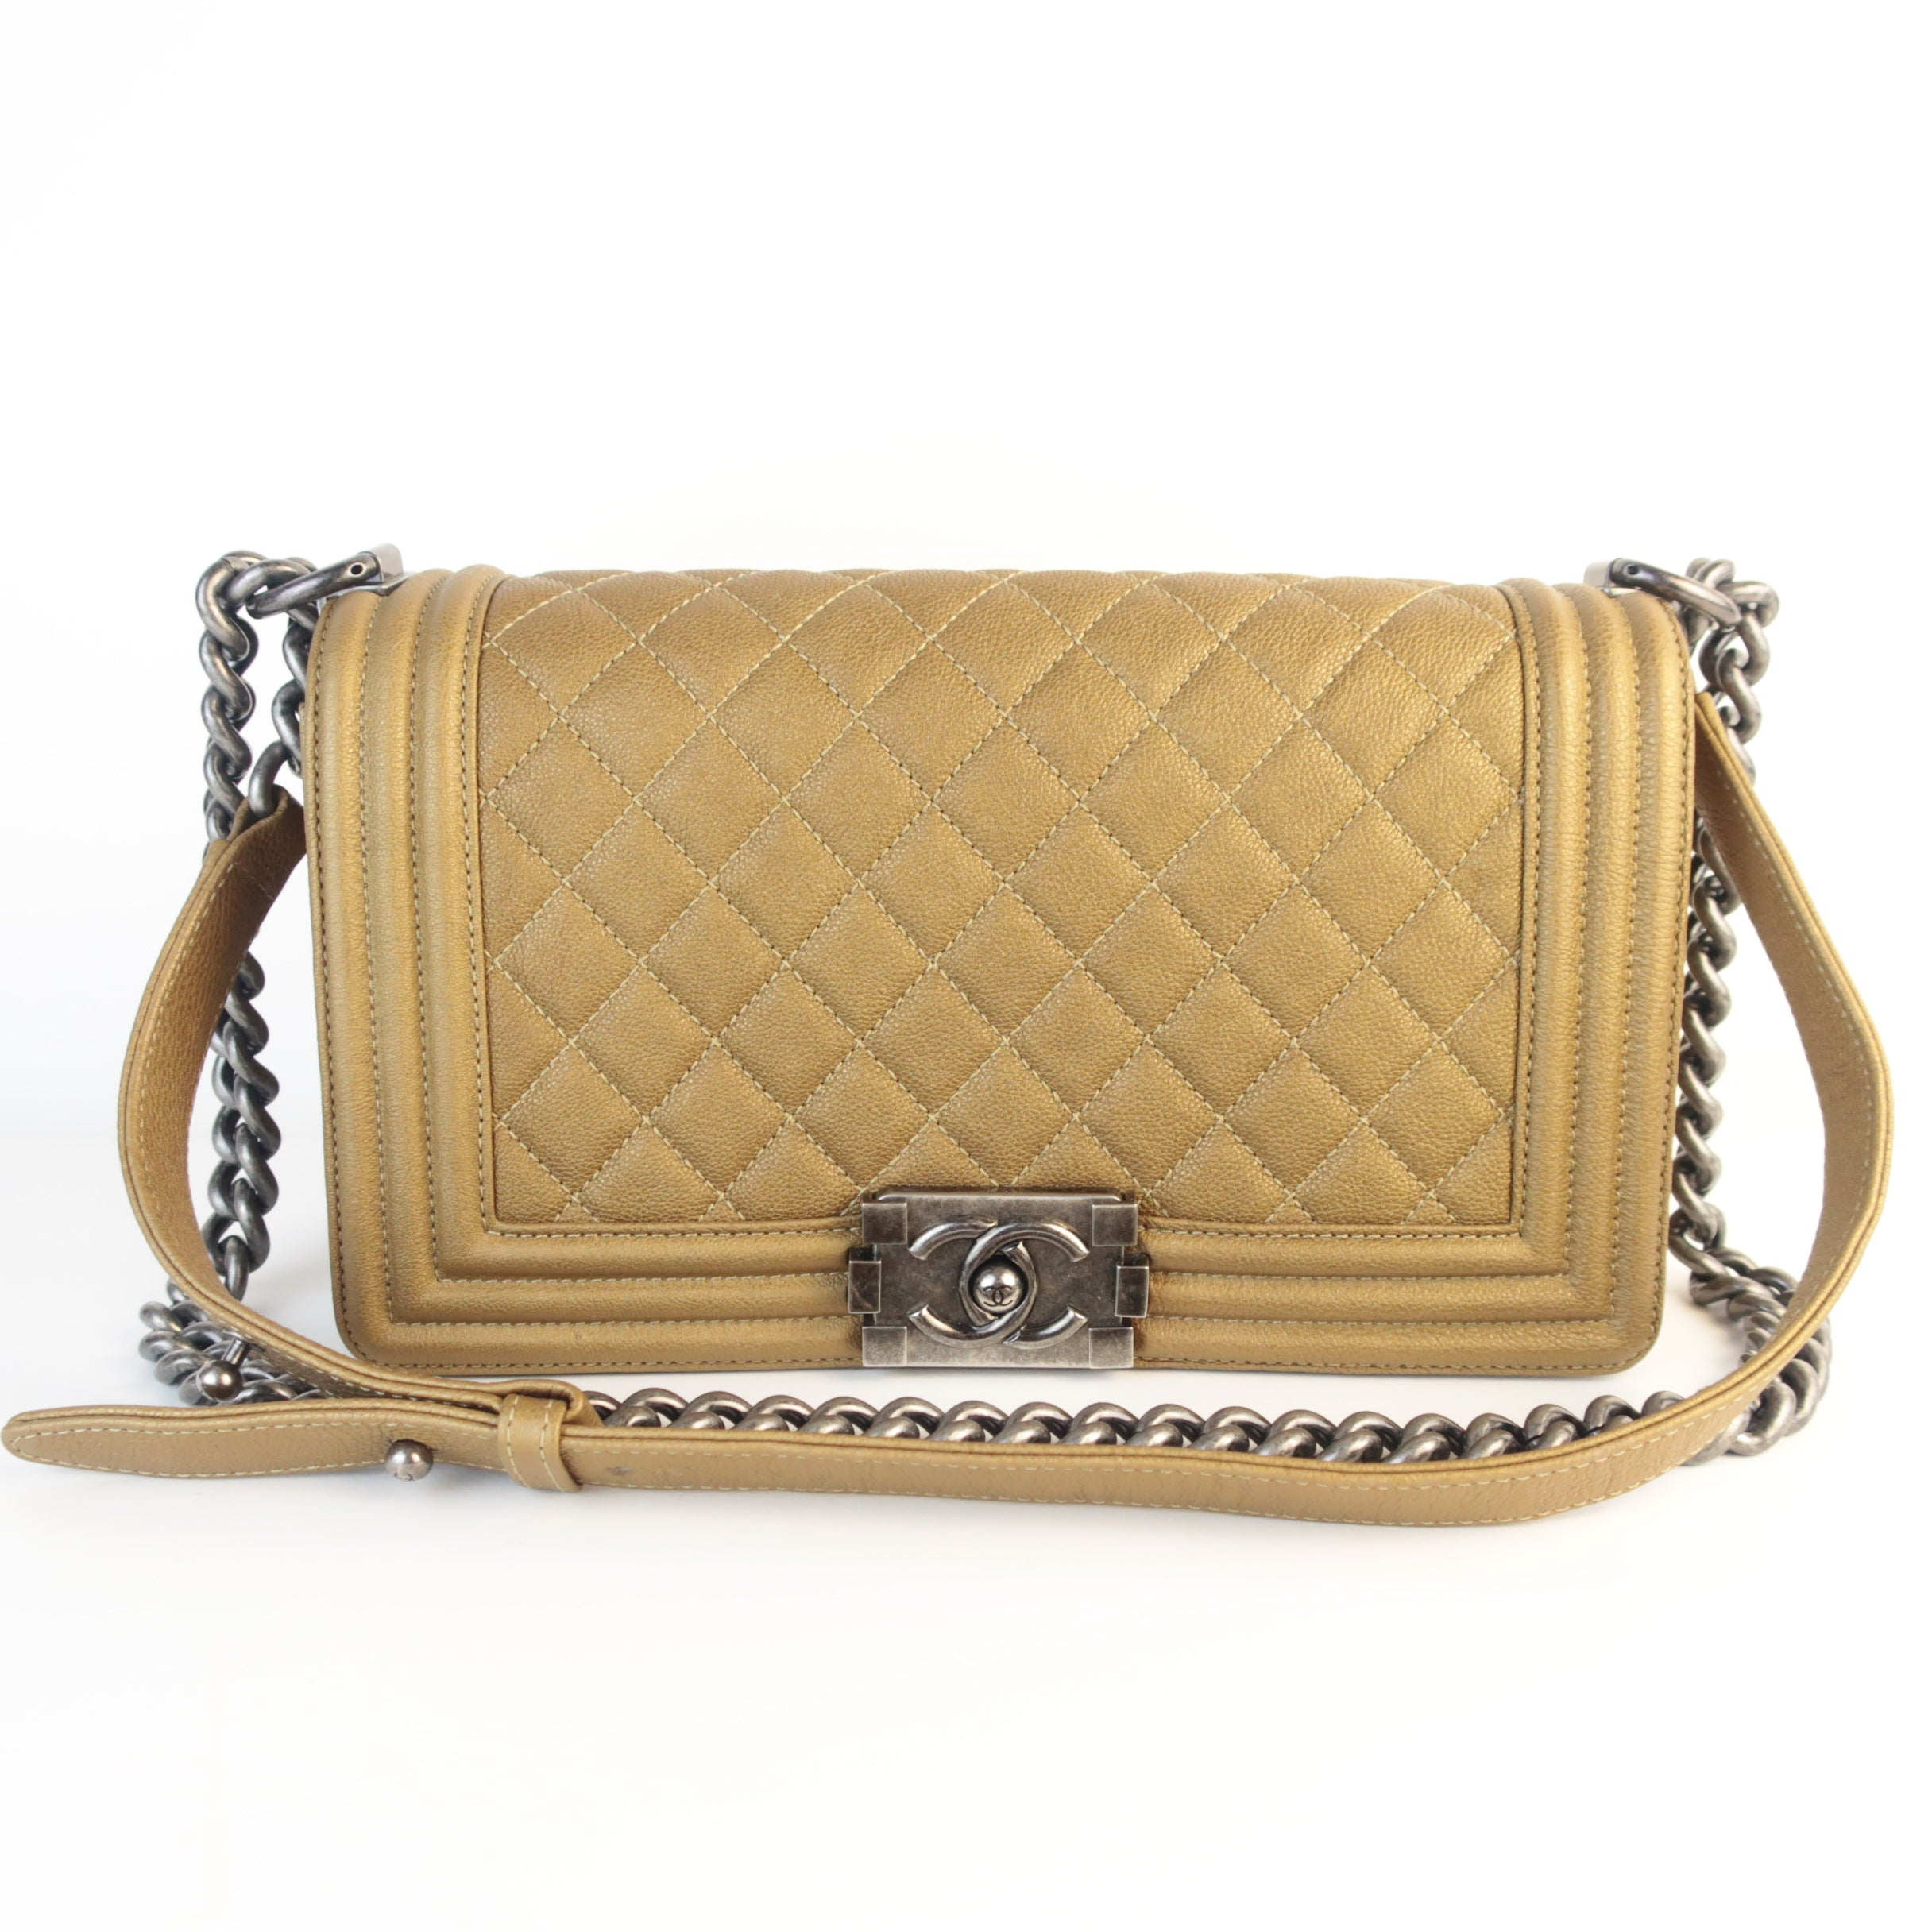 How Much Is Chanel Now After January 2021 Price Increase in the USA? Chanel Boy